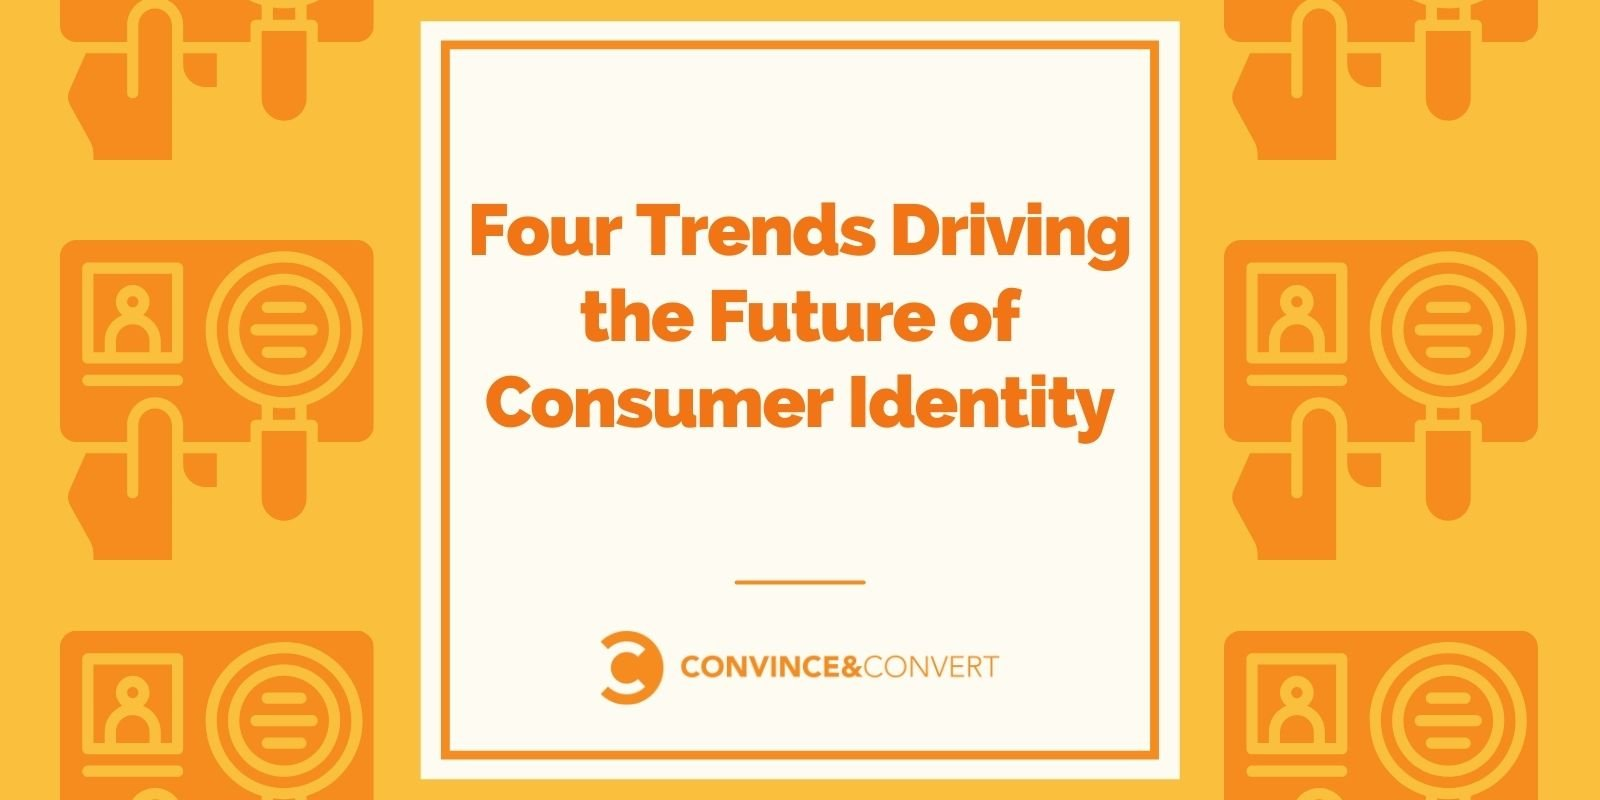 Four Trends Driving the Future of Consumer Identity